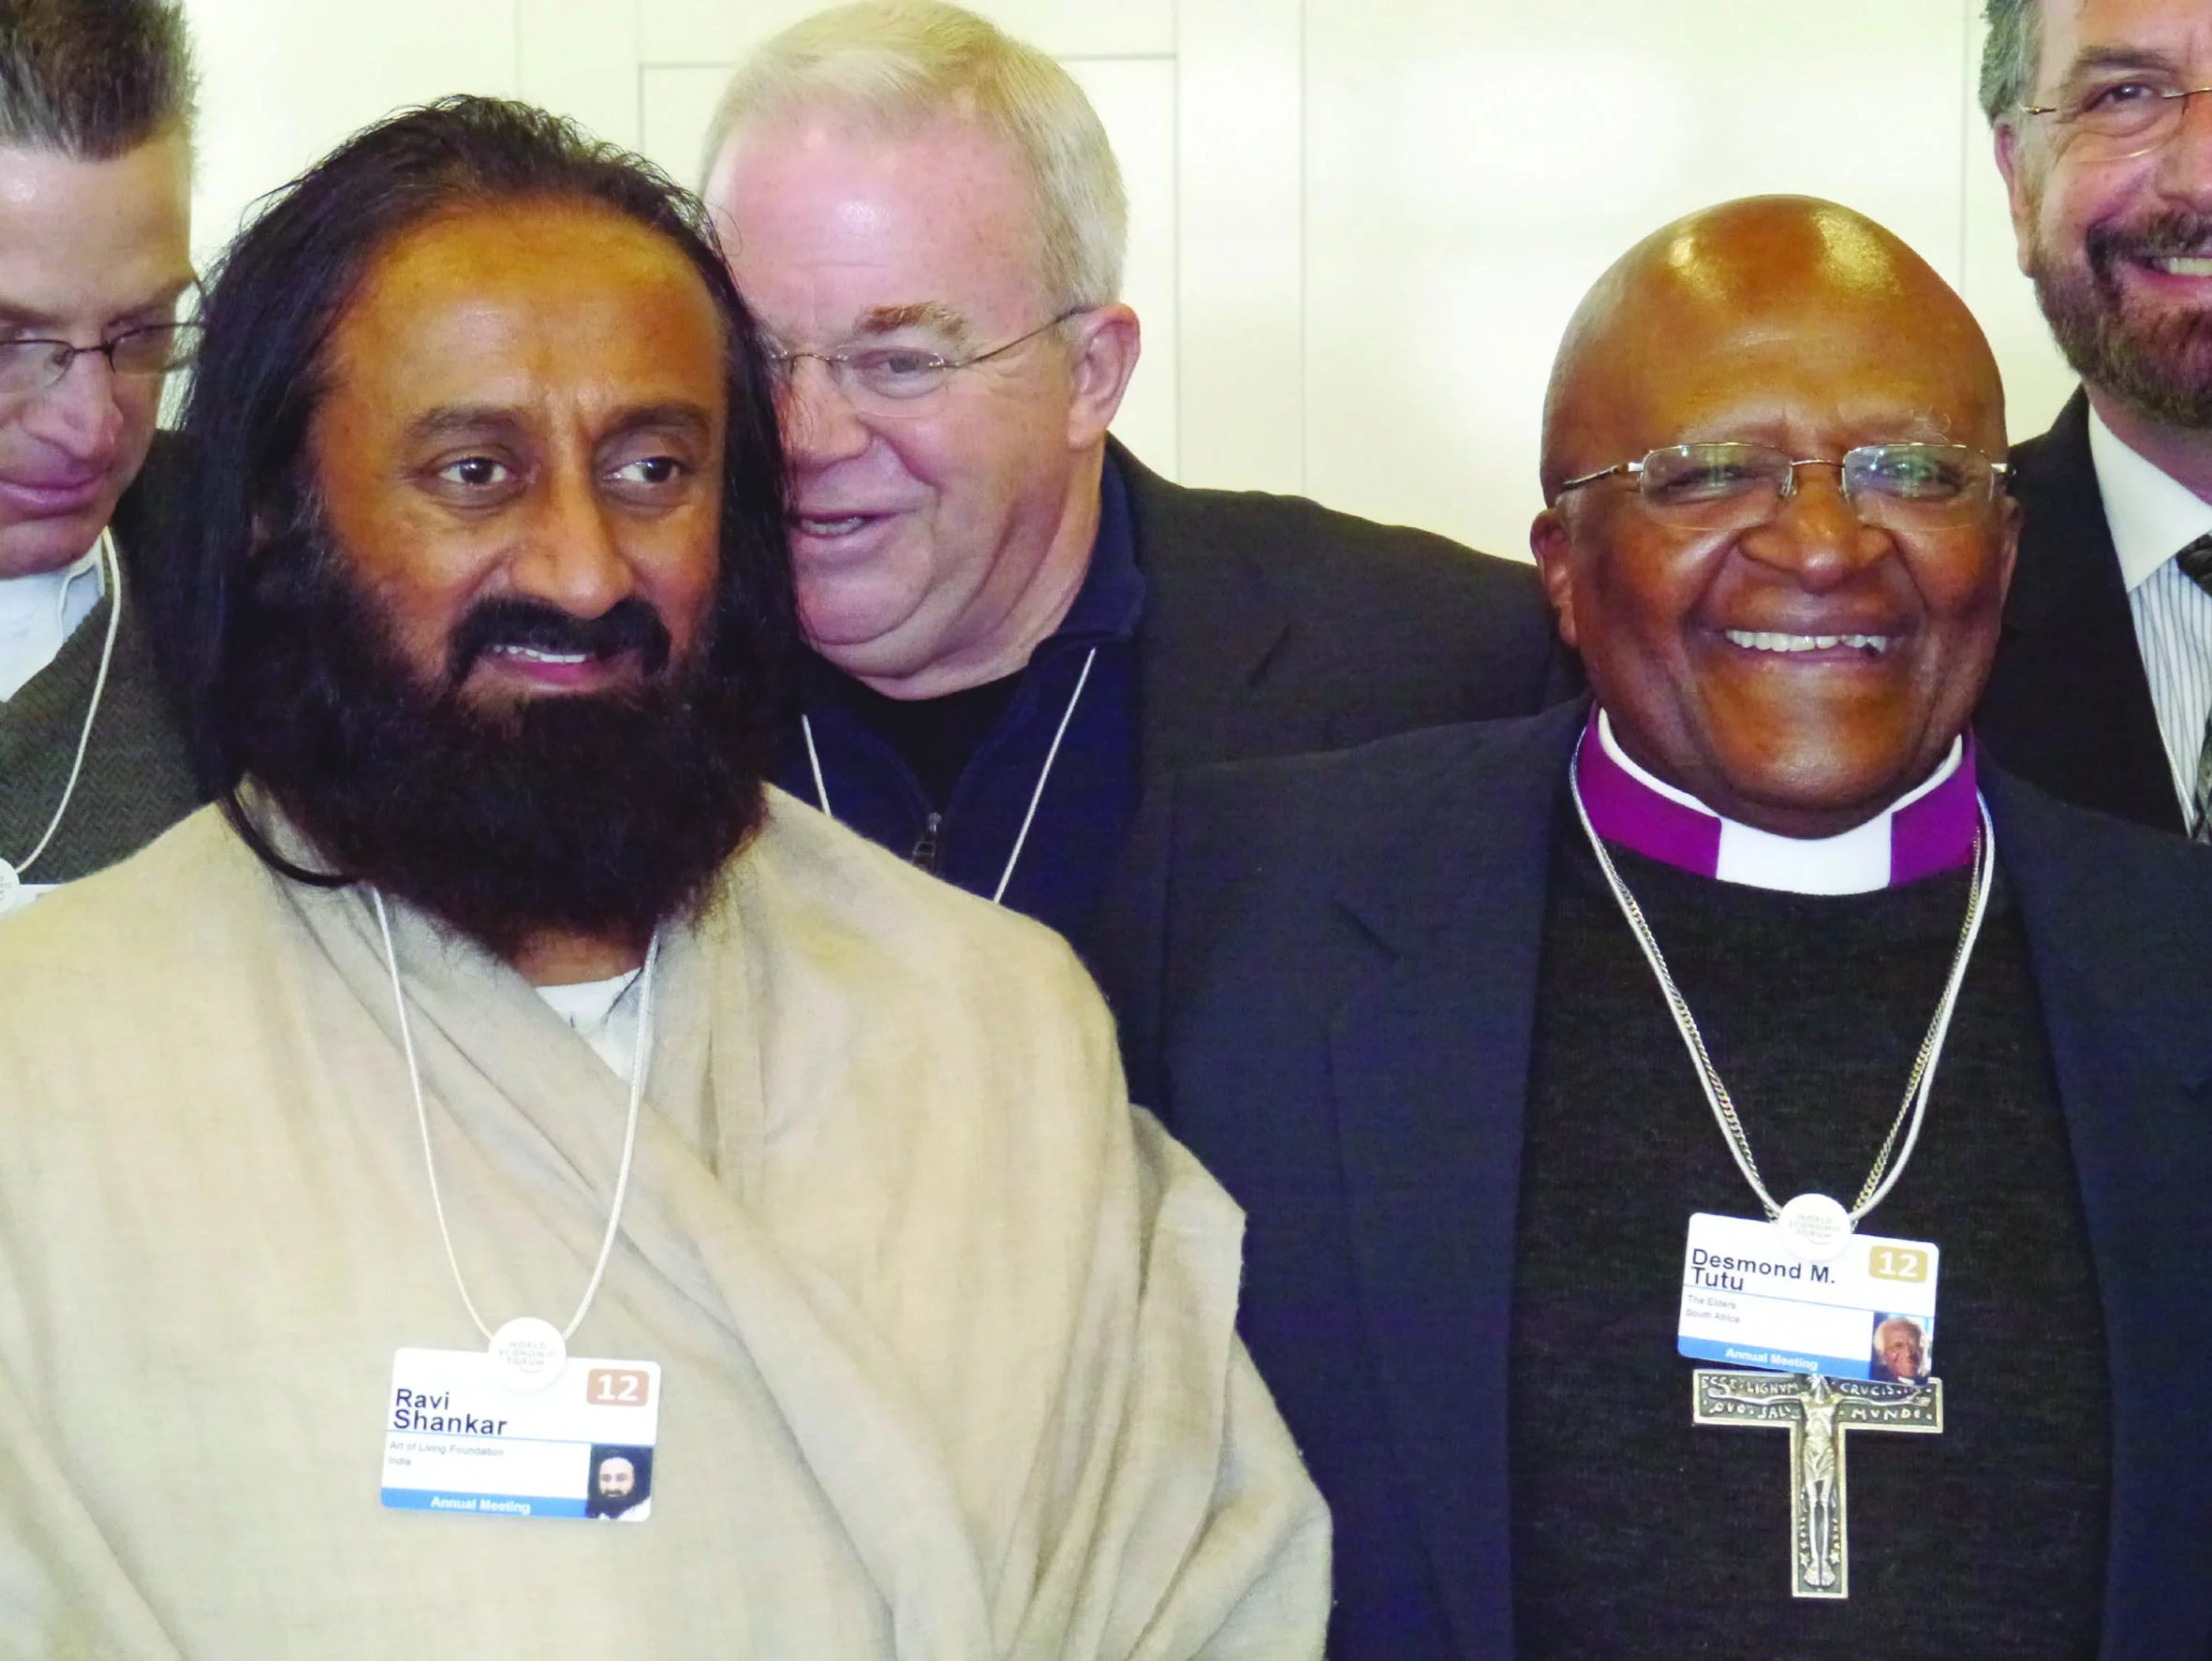 Faith Leaders at the World Economic Forum